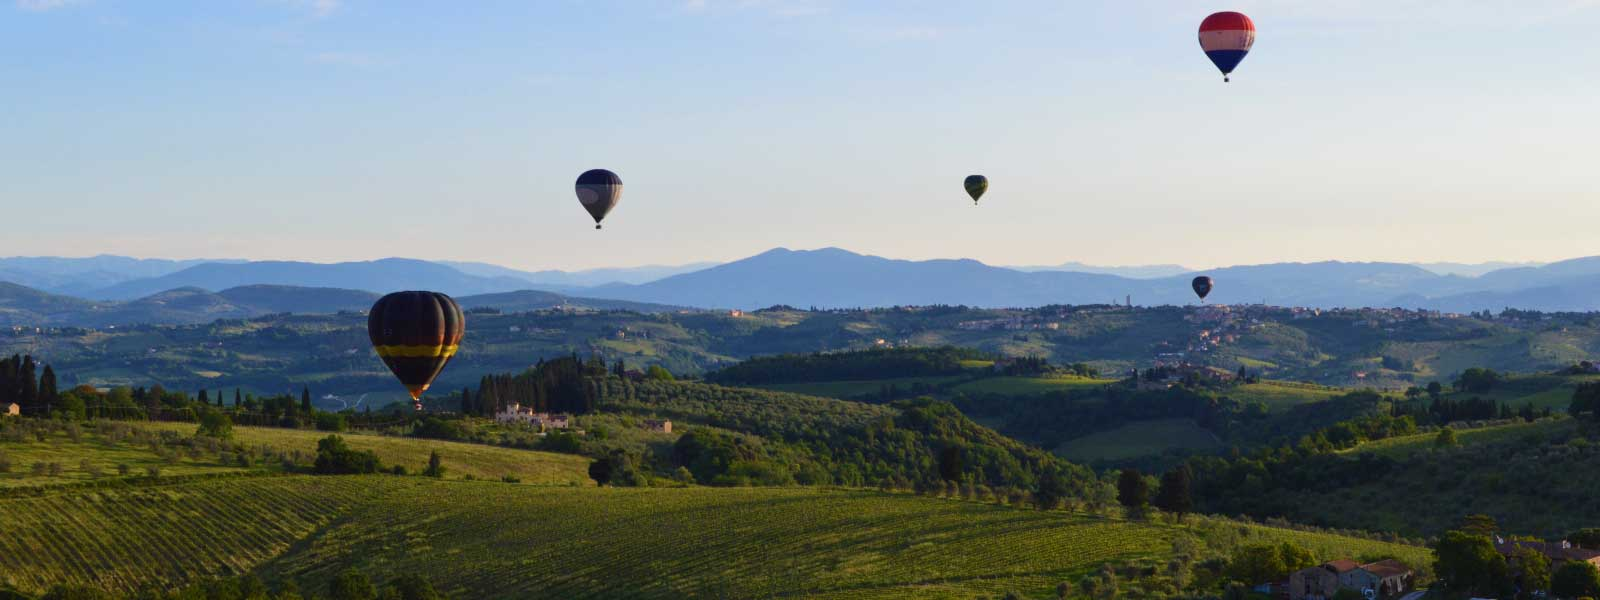 balloon-fleet-in-flight-over-the-tuscan-countryside